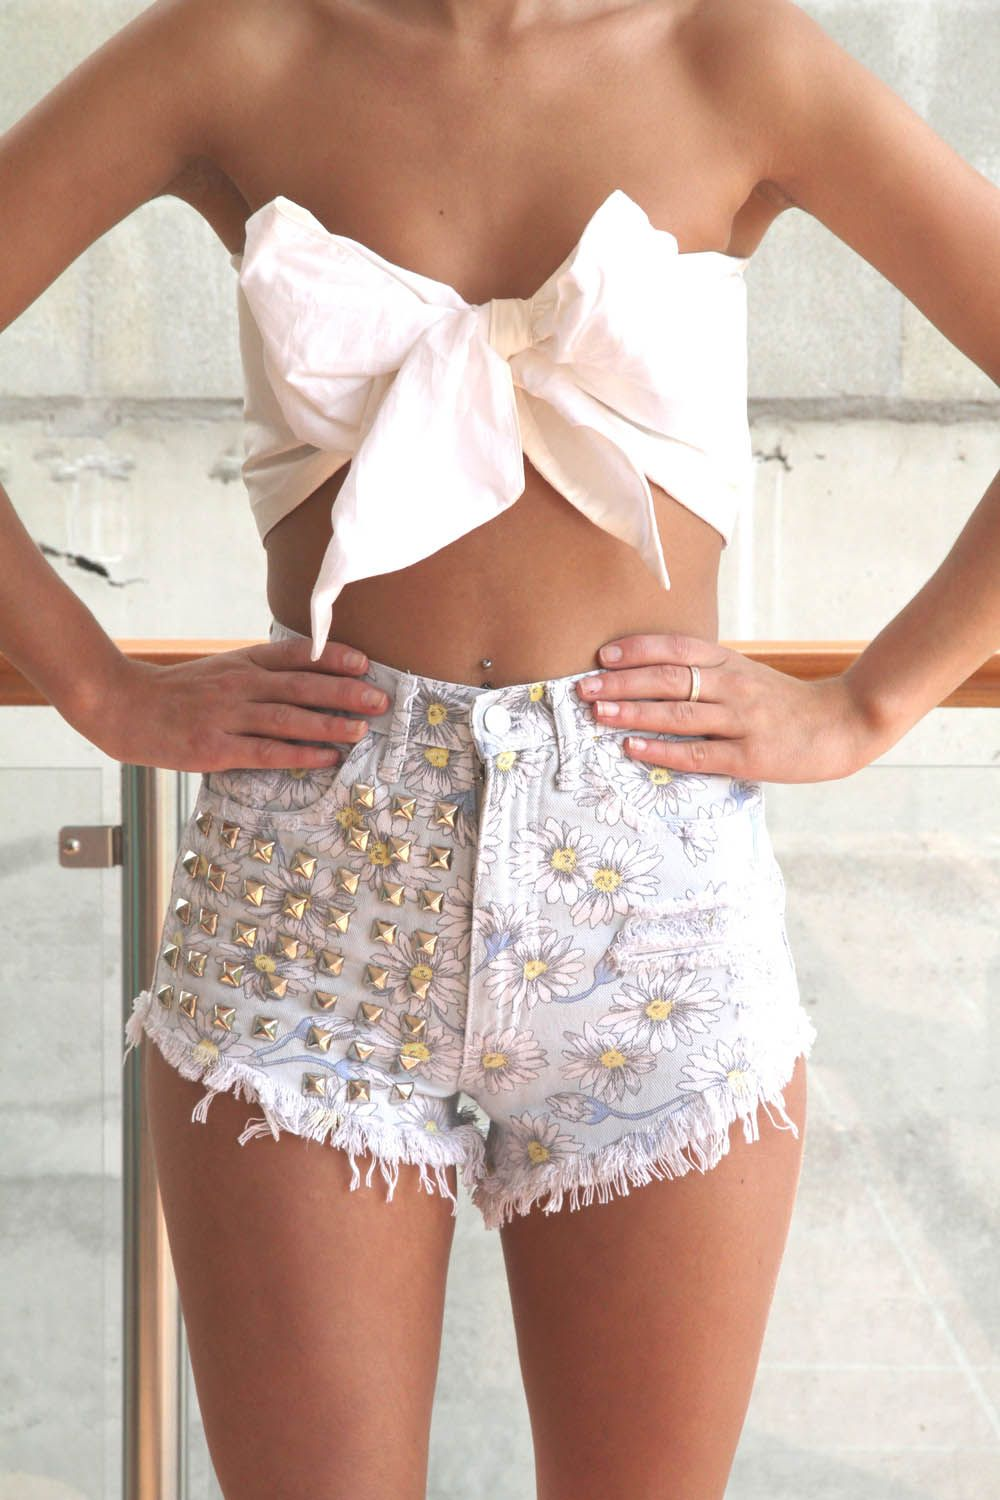 omg want this outfit noooooow but it would not look like this on me!